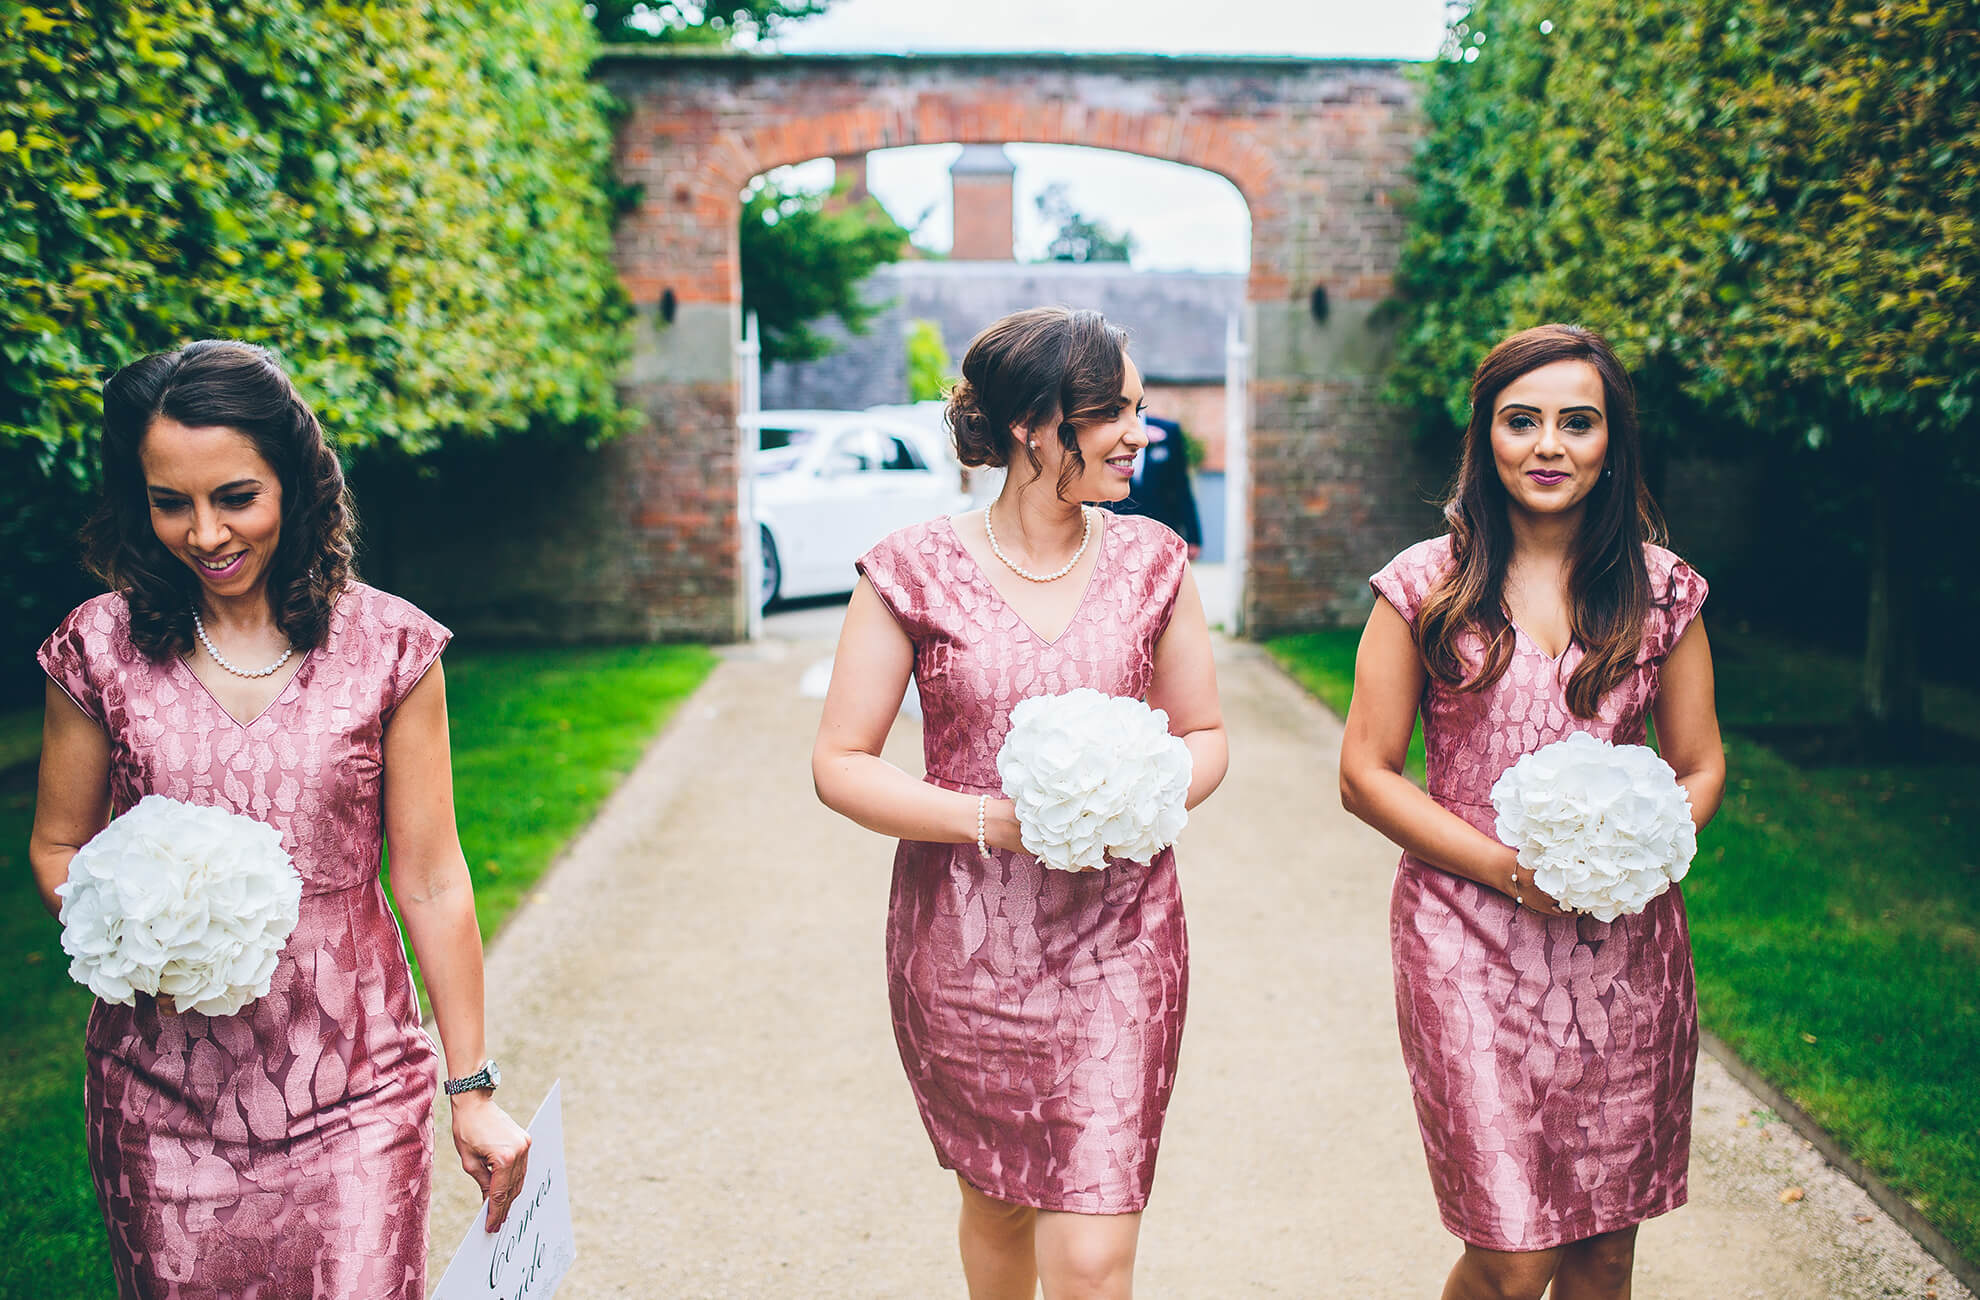 Bridesmaids wear short pink bridesmaid dresses as they walk towards the wedding ceremony at the Cheshire wedding venue